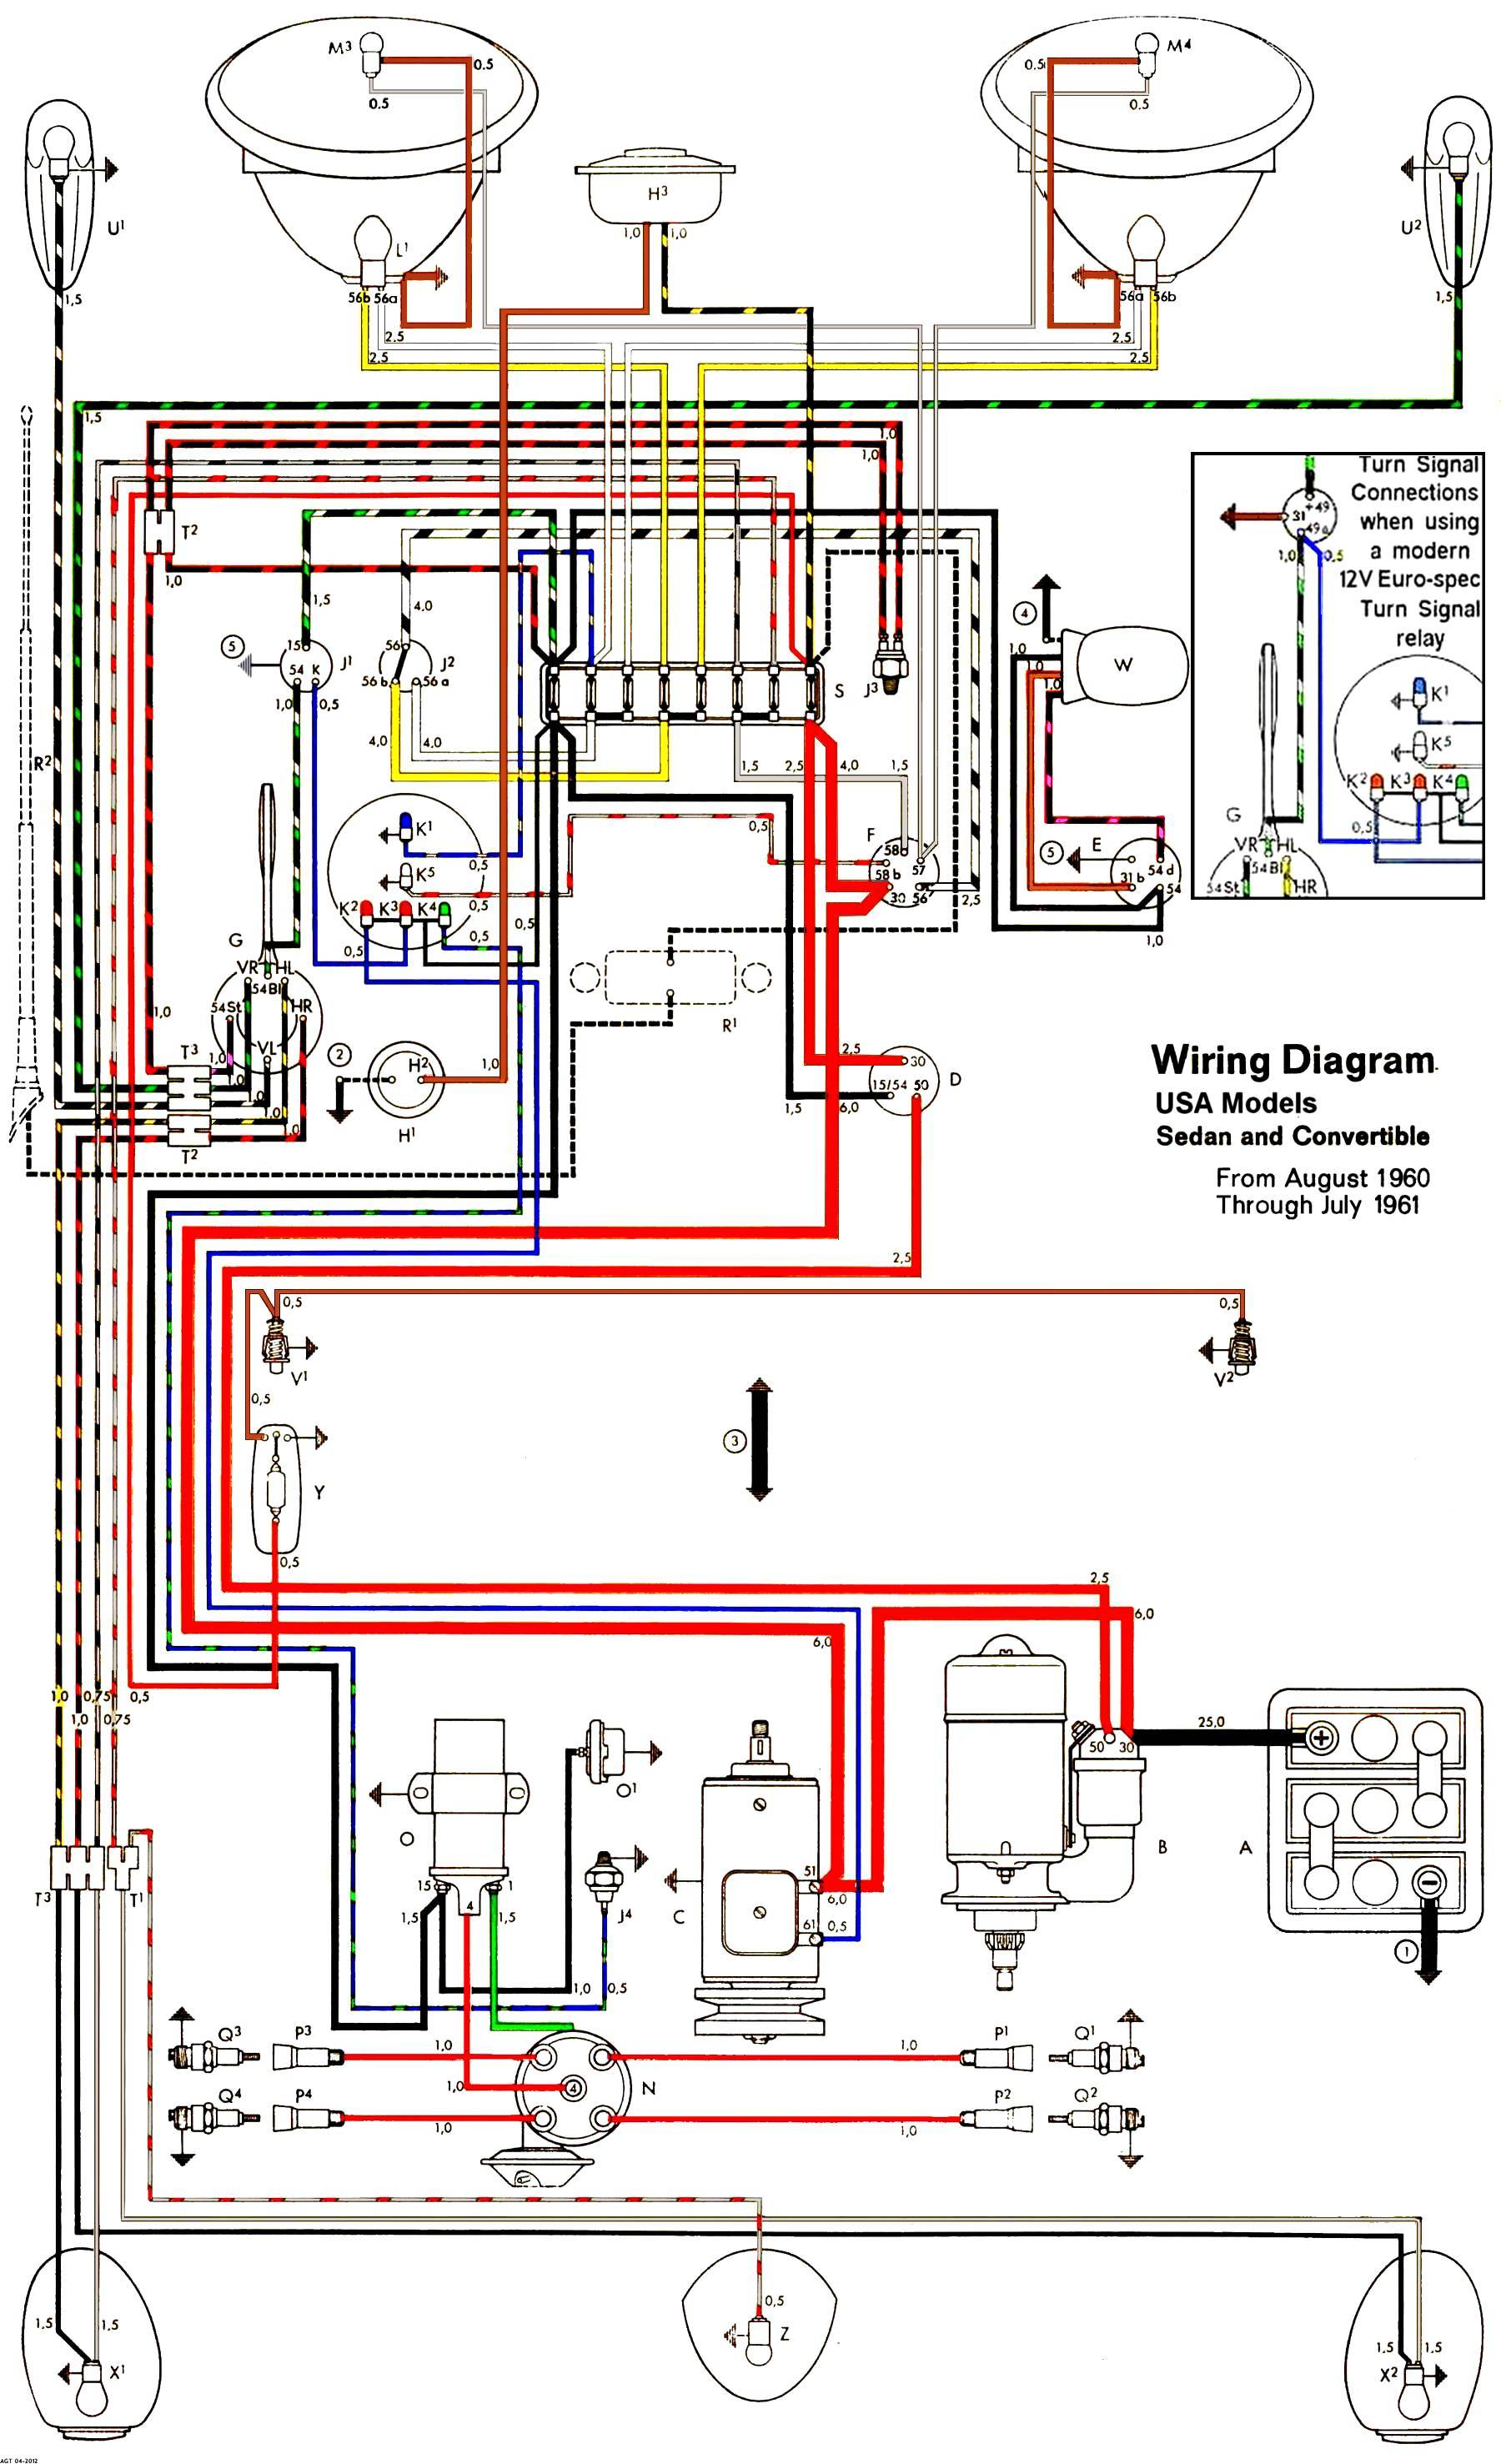 thesamba com type 1 wiring diagrams rh thesamba com Simple Turn Signal Diagram Turn Signal Relay Wiring Diagram